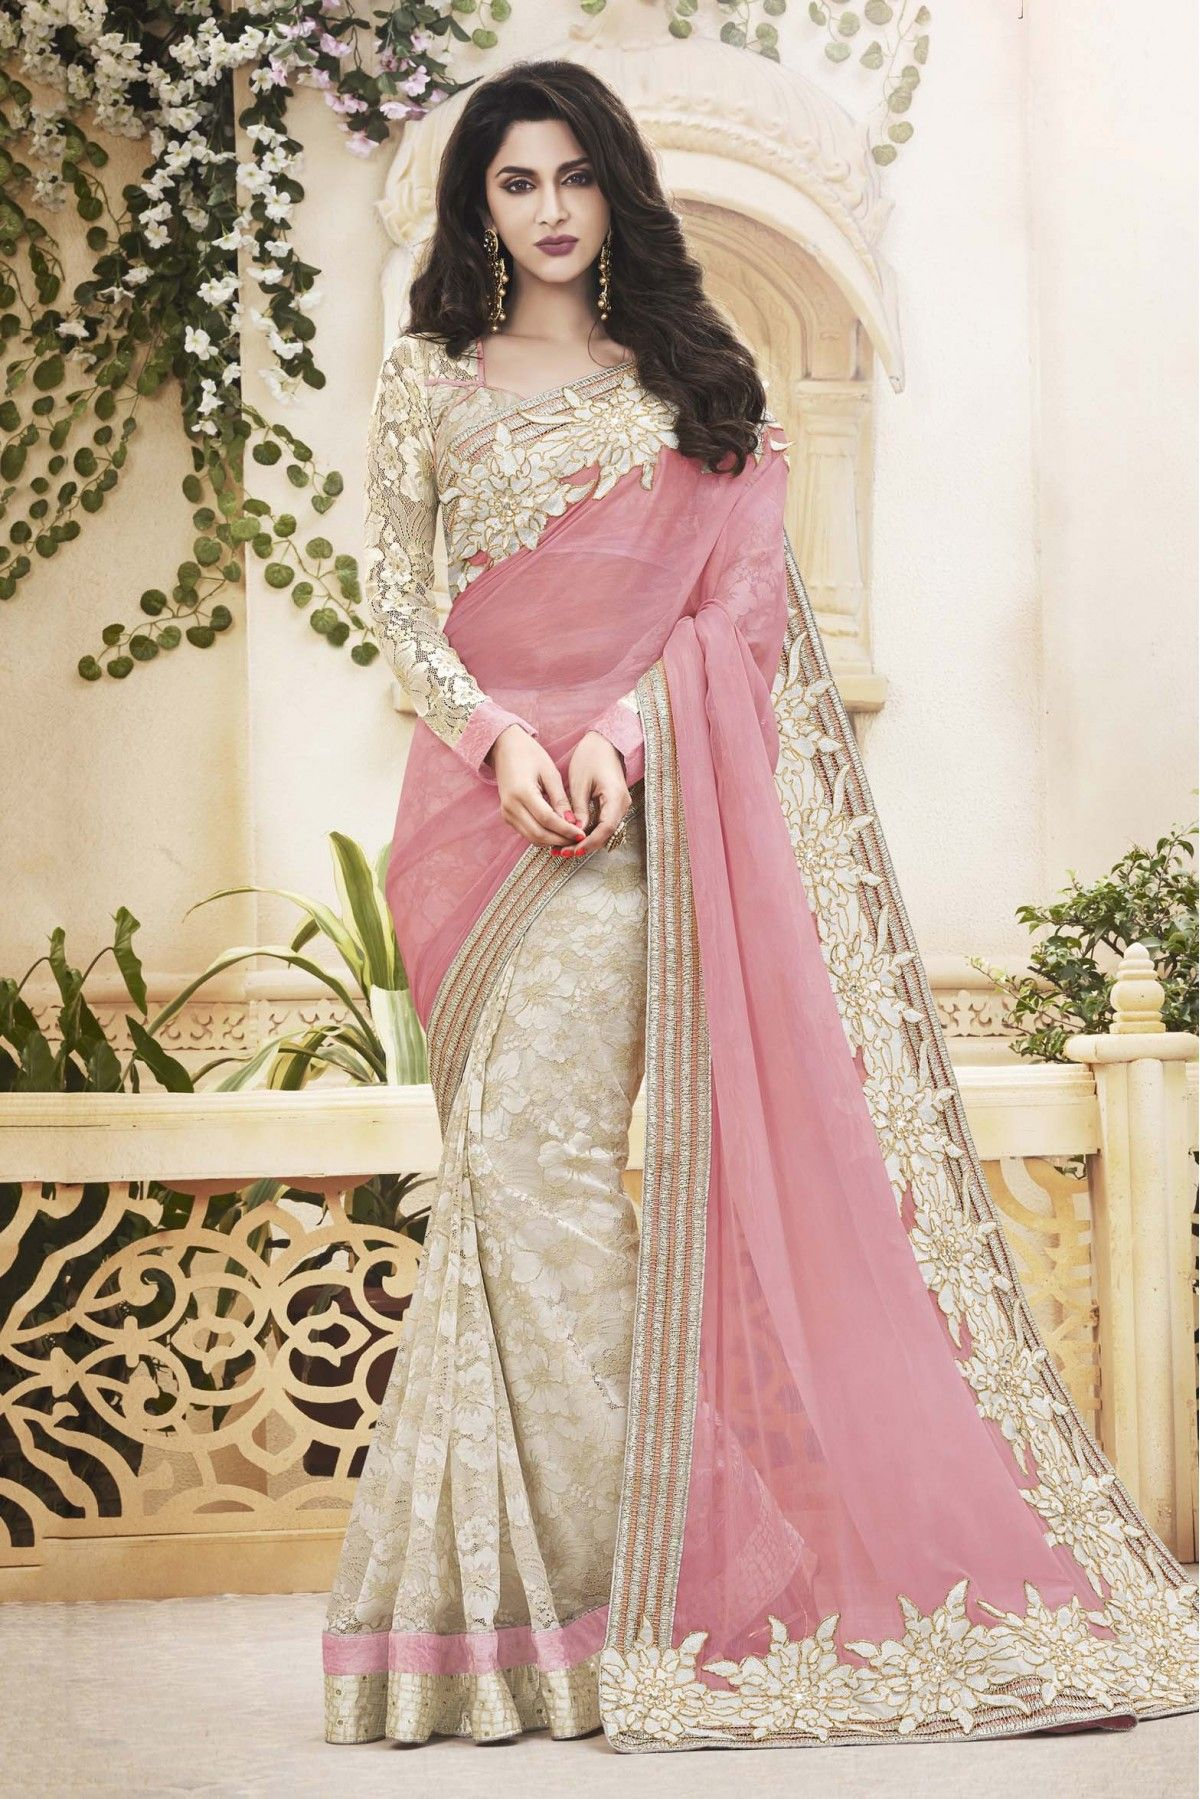 9a227a17869638 Off White and Pink Colour Net and Pure Chiffon Fabric Designer Saree Comes  With Matching Velvet and Net Fabric Blouse. This Saree Is Crafted With  Diamond ...